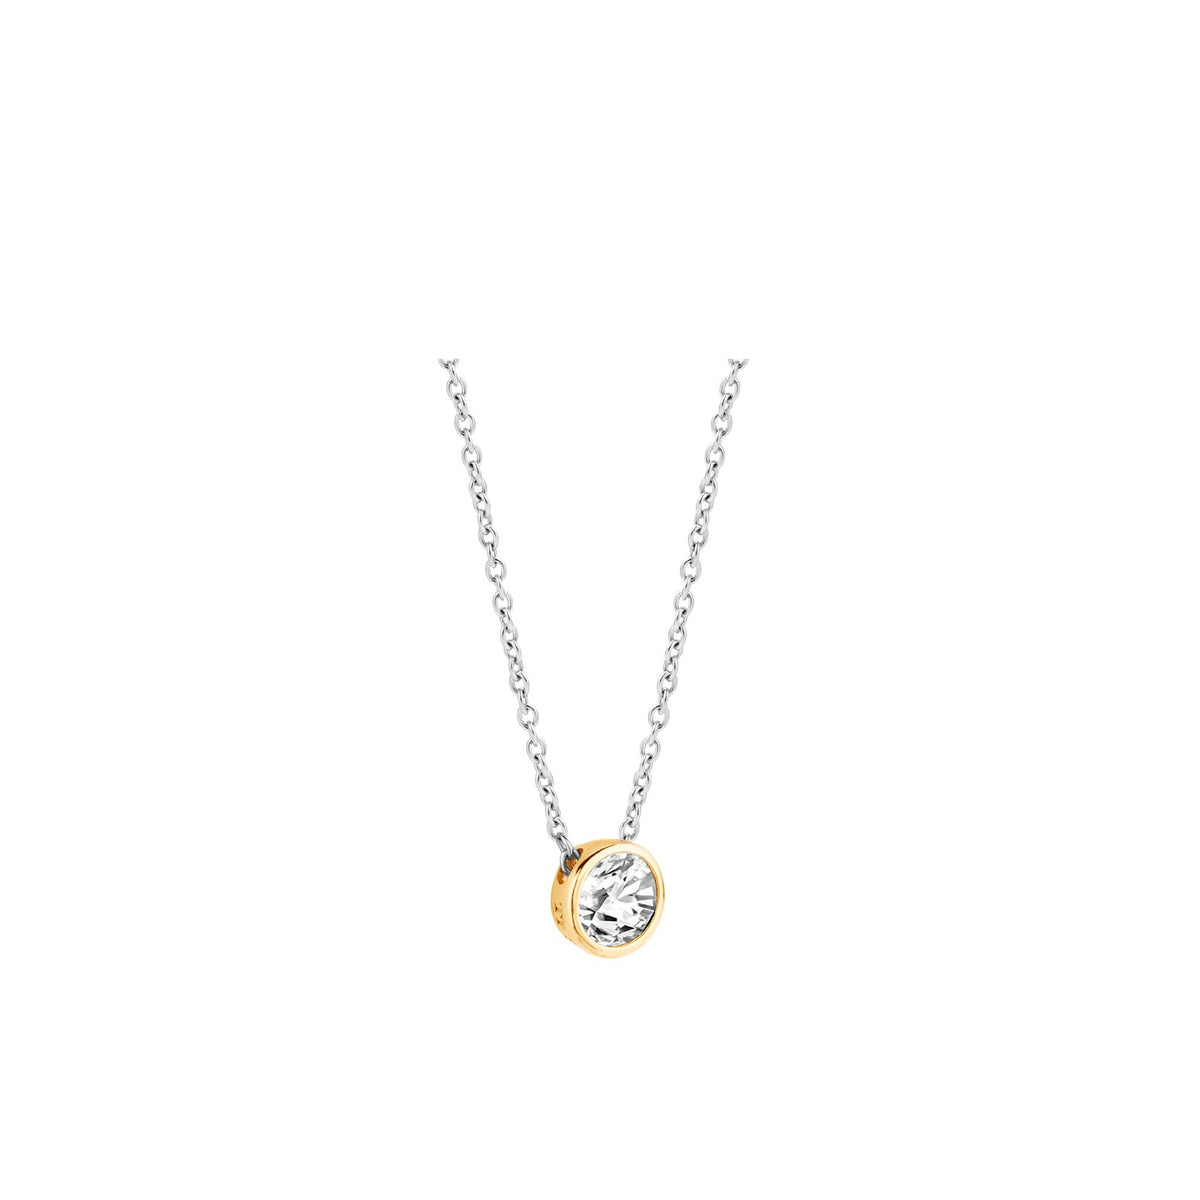 TI SENTO Sterling Silver and Gold Tone Bezel Set Cubic Zirconia Necklace